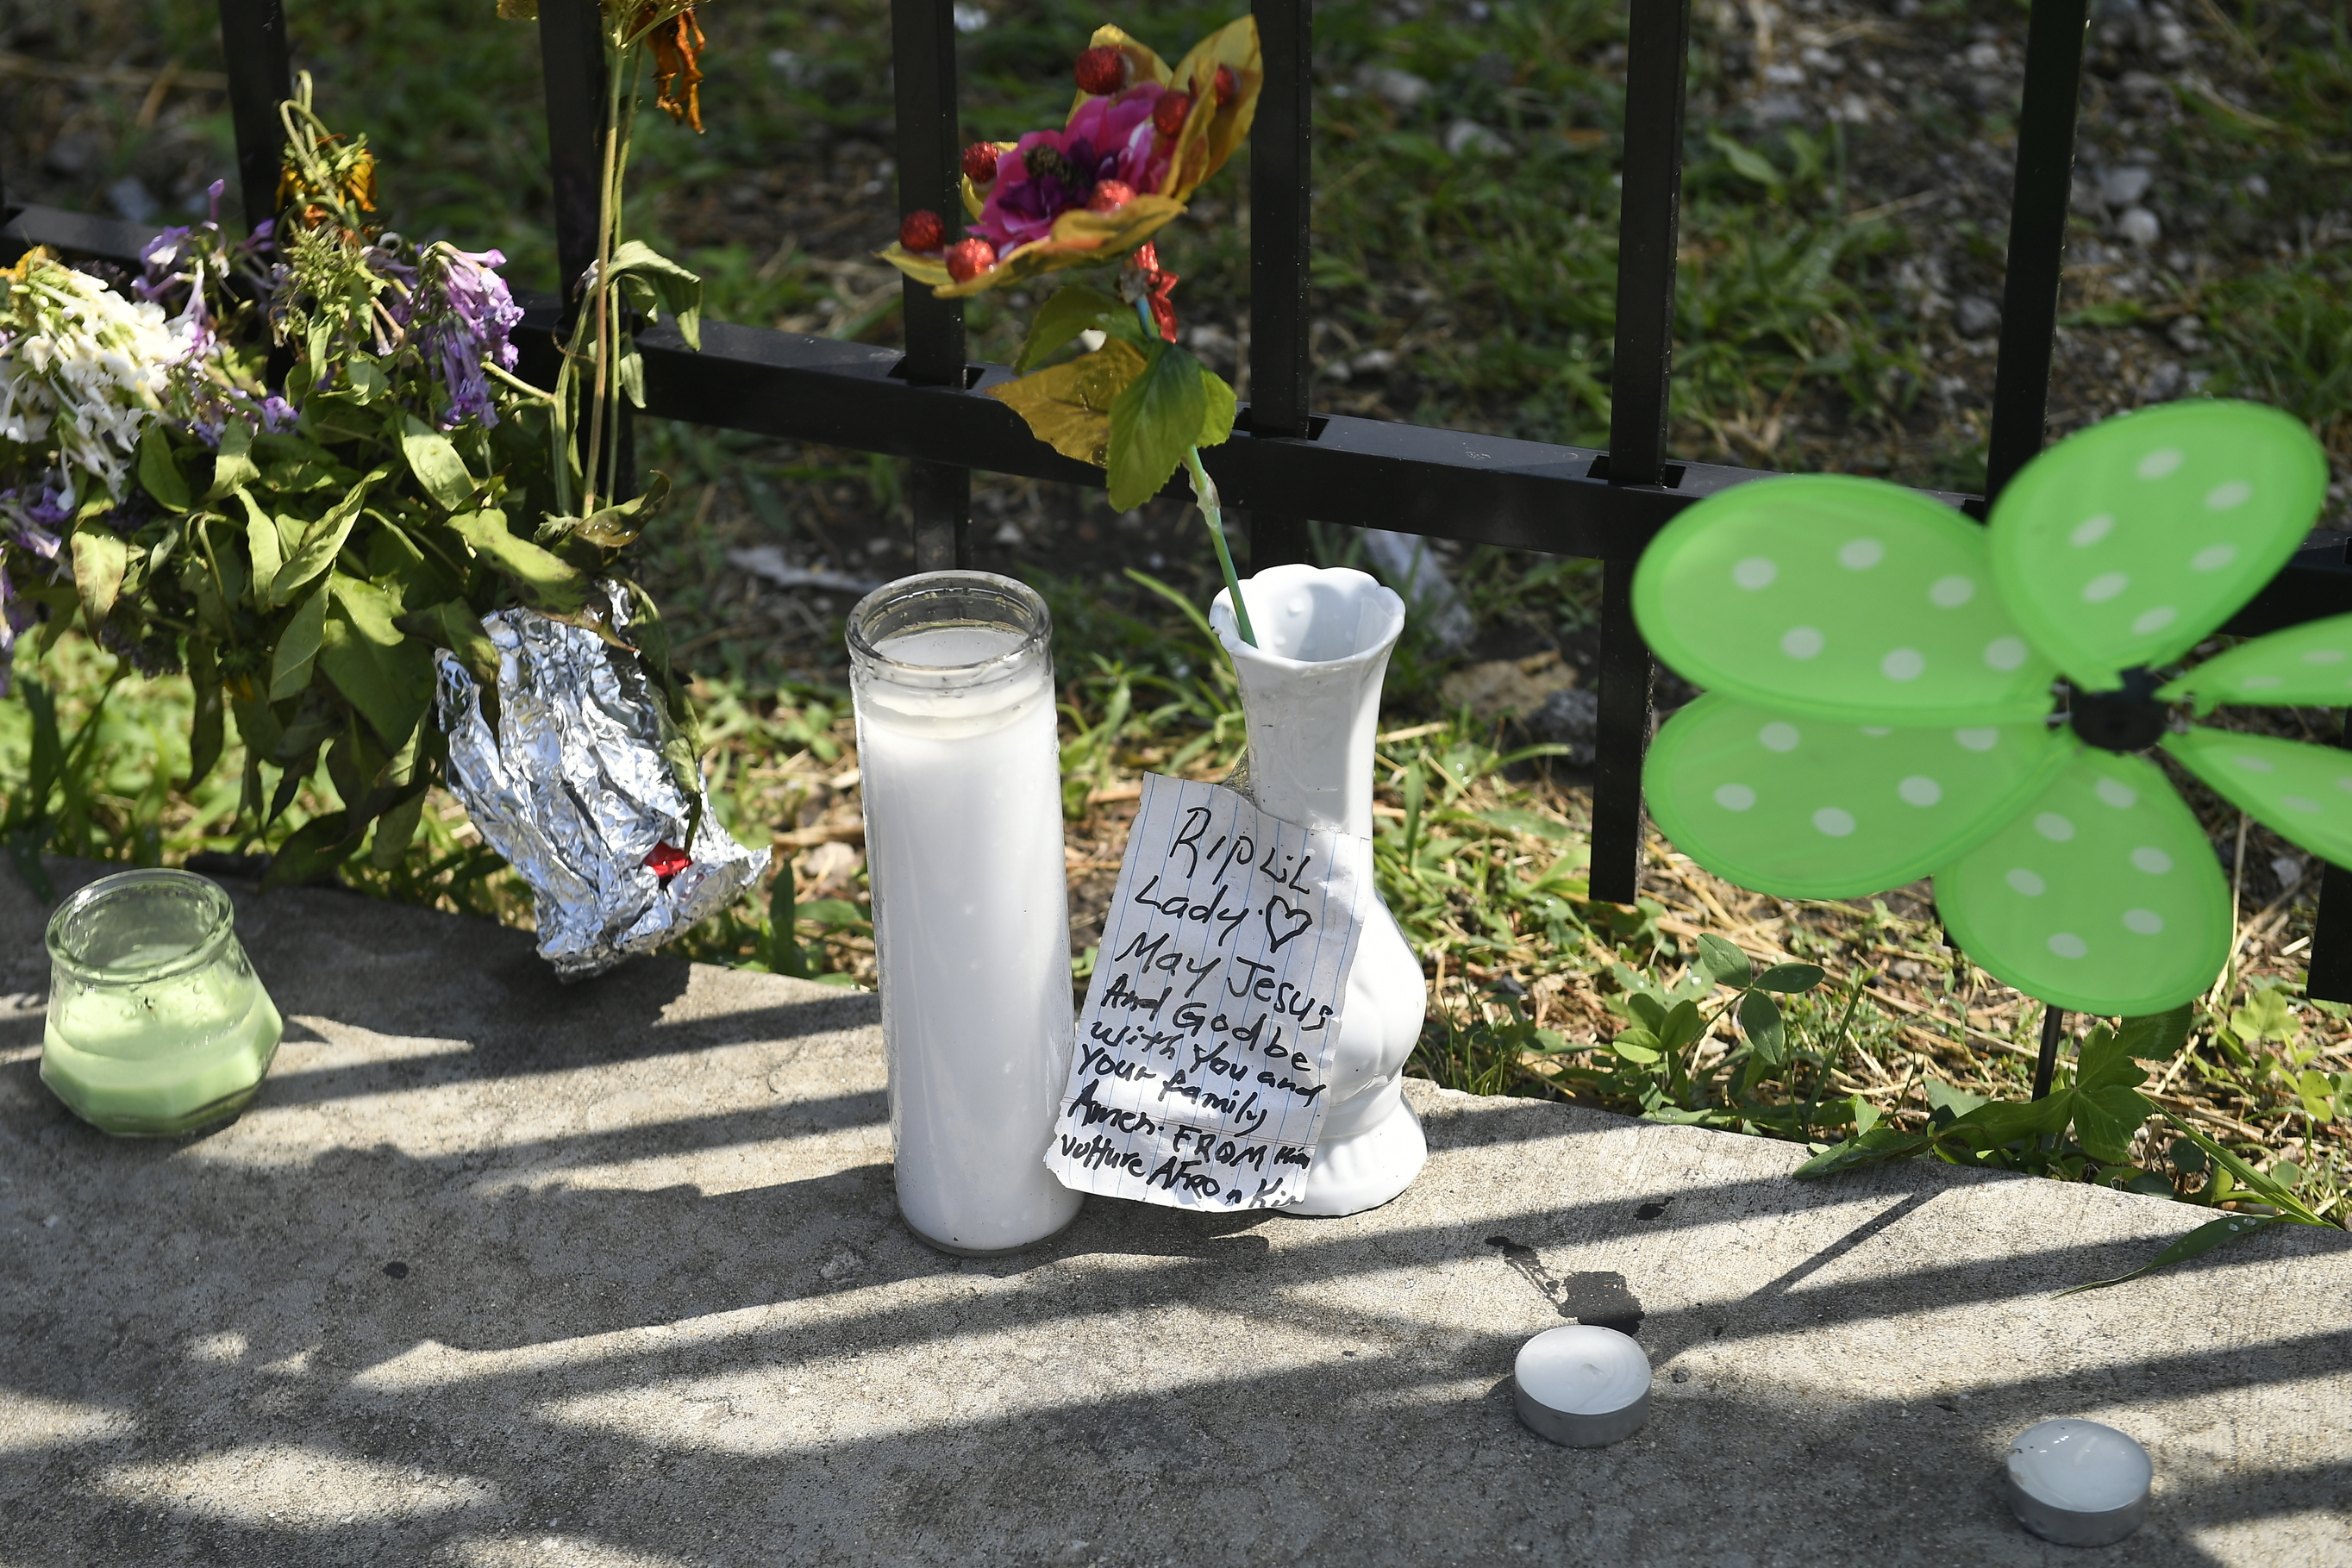 A memorial stands at 75th Street and Stewart Avenue, in Chicago, Tuesday, July 30, 2019  where two women were slain in a drive-by shooting Friday night.